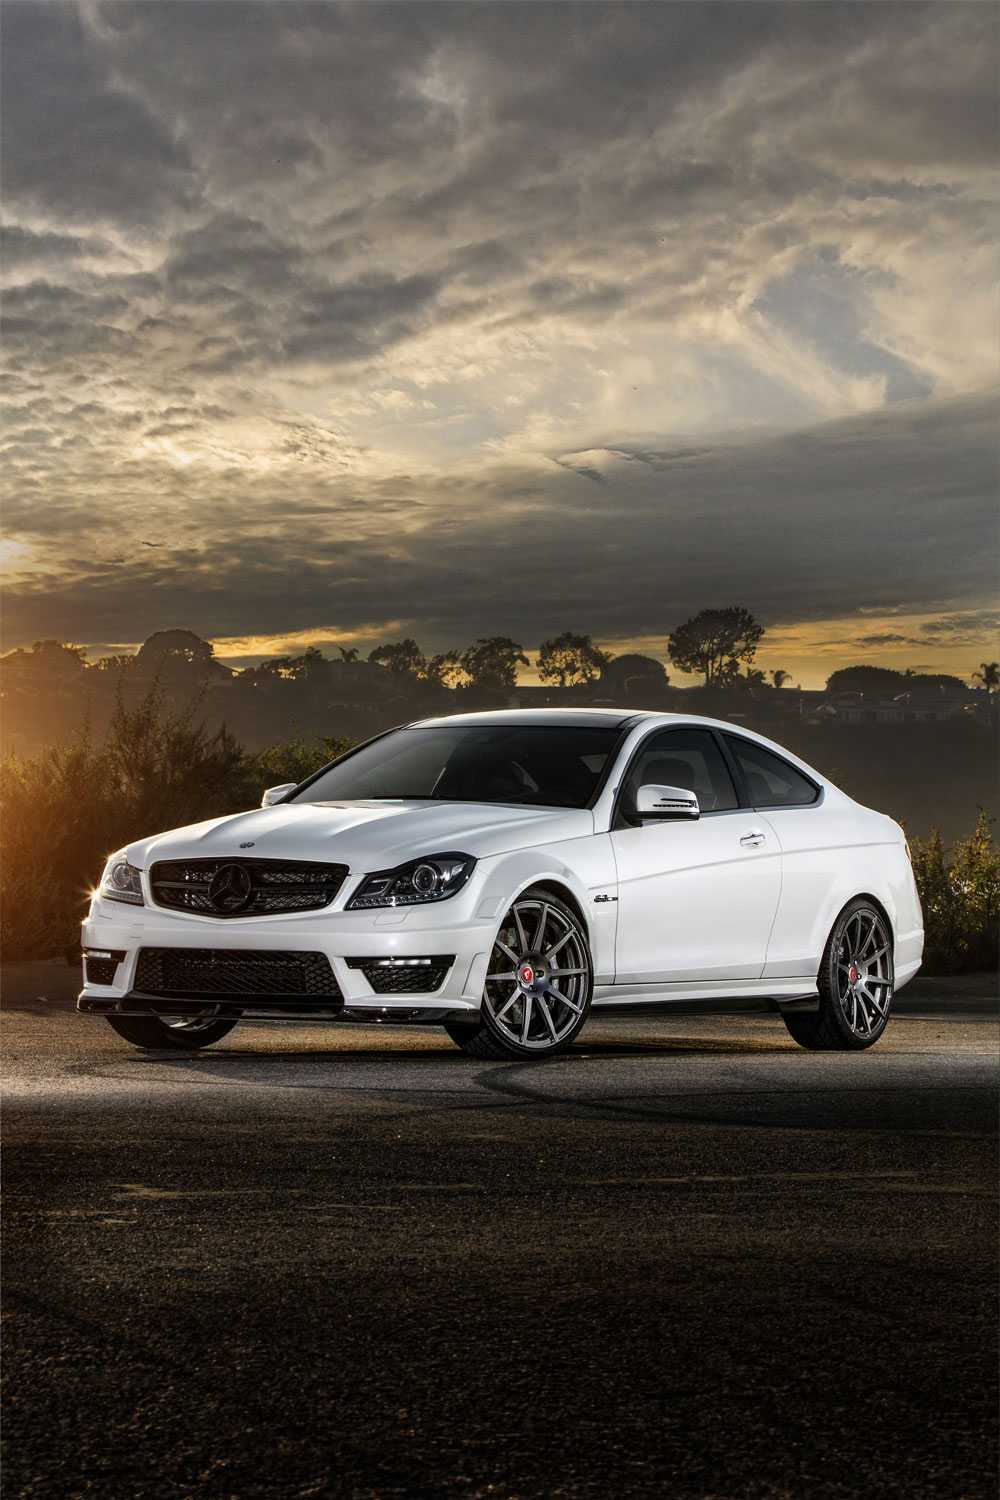 Exclusive Car Wallpapers Vorsteiner Mercedes Benz C63 Amg With New Outdoor Photoshoot